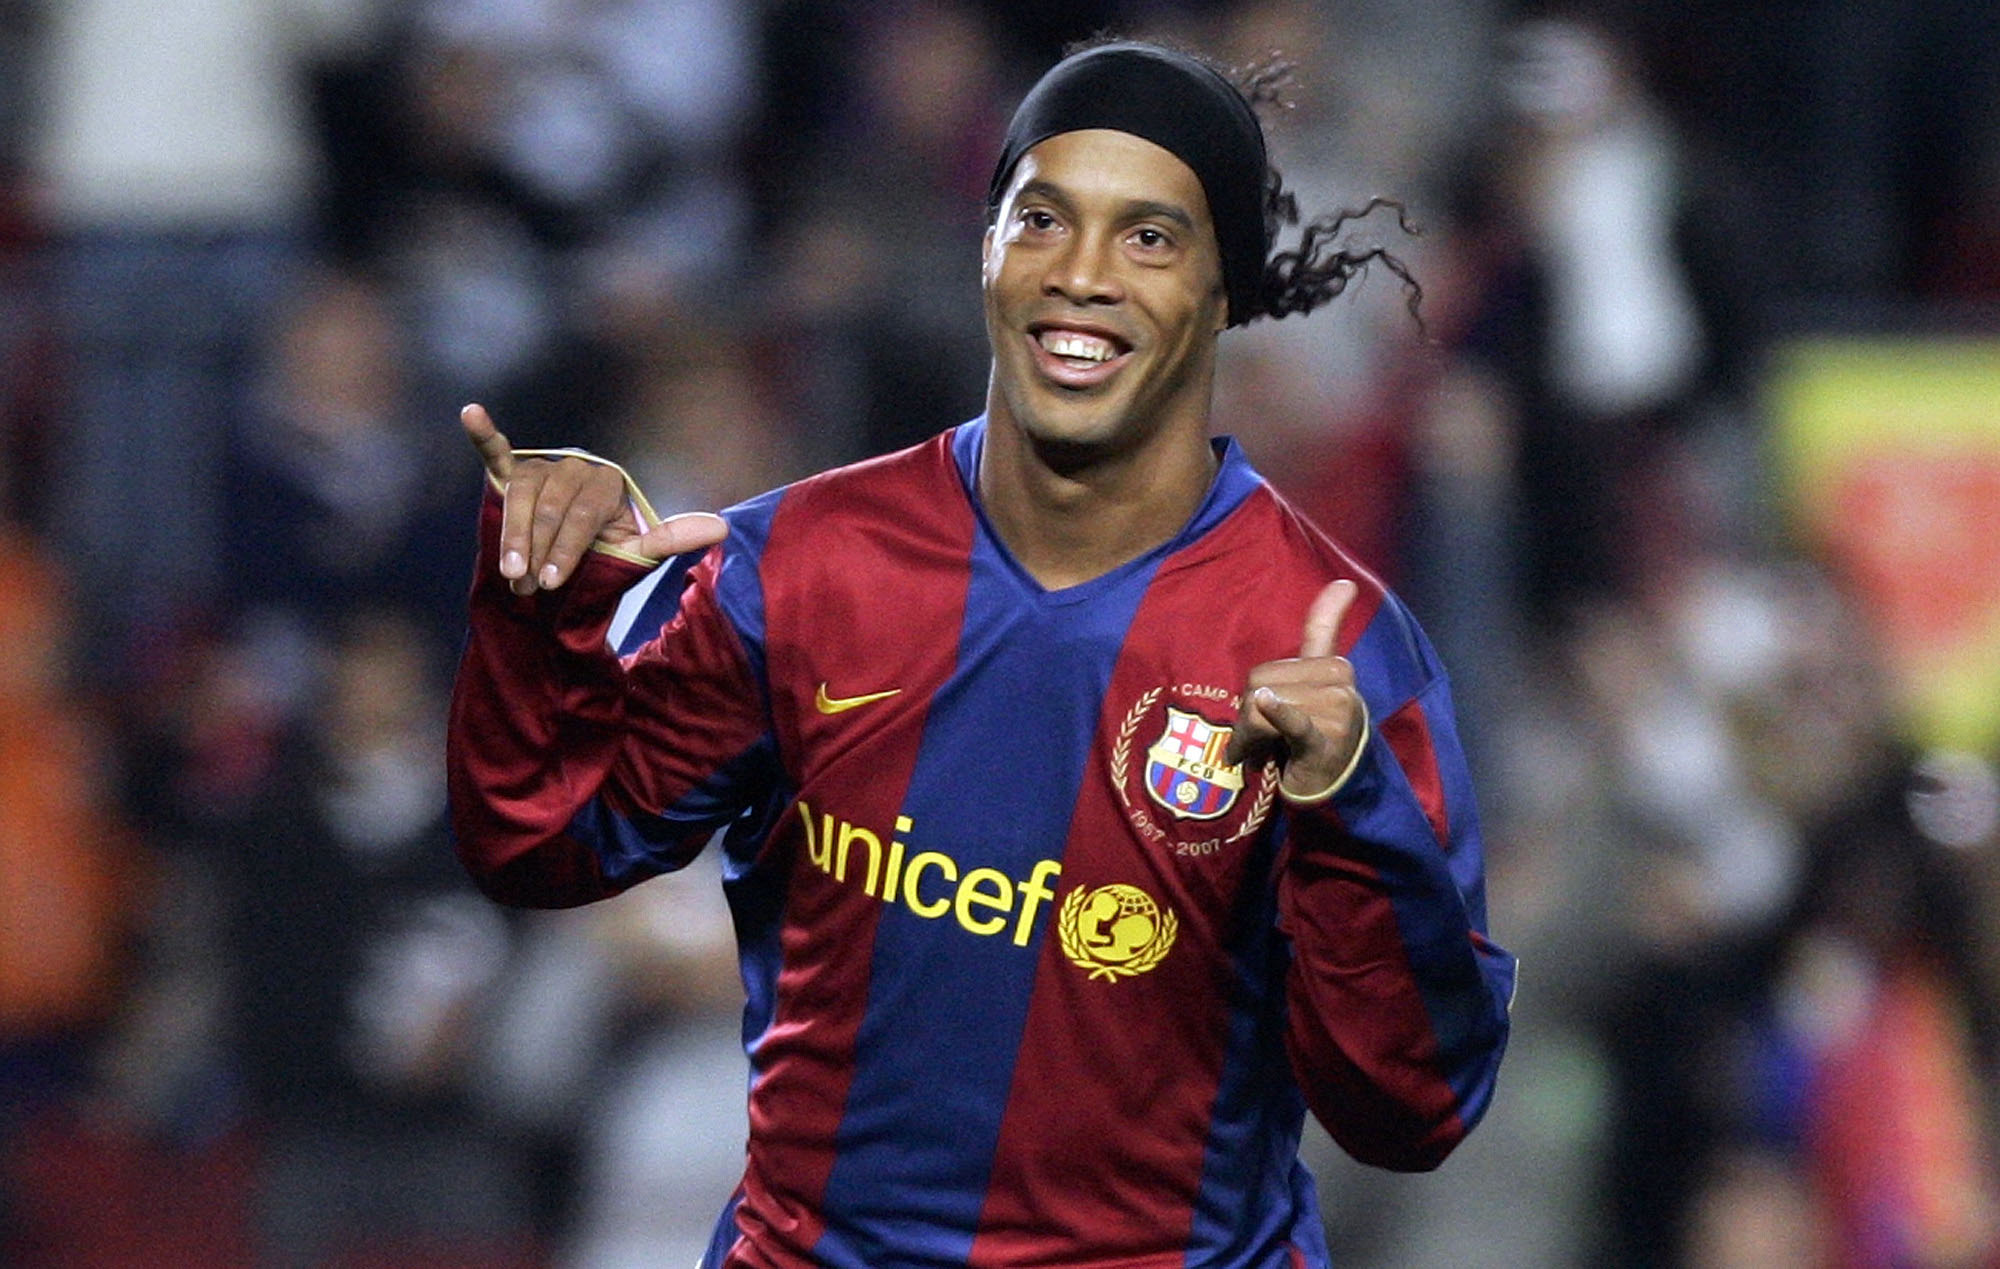 FILE - FC Barcelona player Ronaldinho, from Brazil, celebrates his goal against Deportivo Coruna during his Spanish league soccer match at the Camp Nou Stadium in Barcelona, Spain, on December 9, 2007. Photo: AP